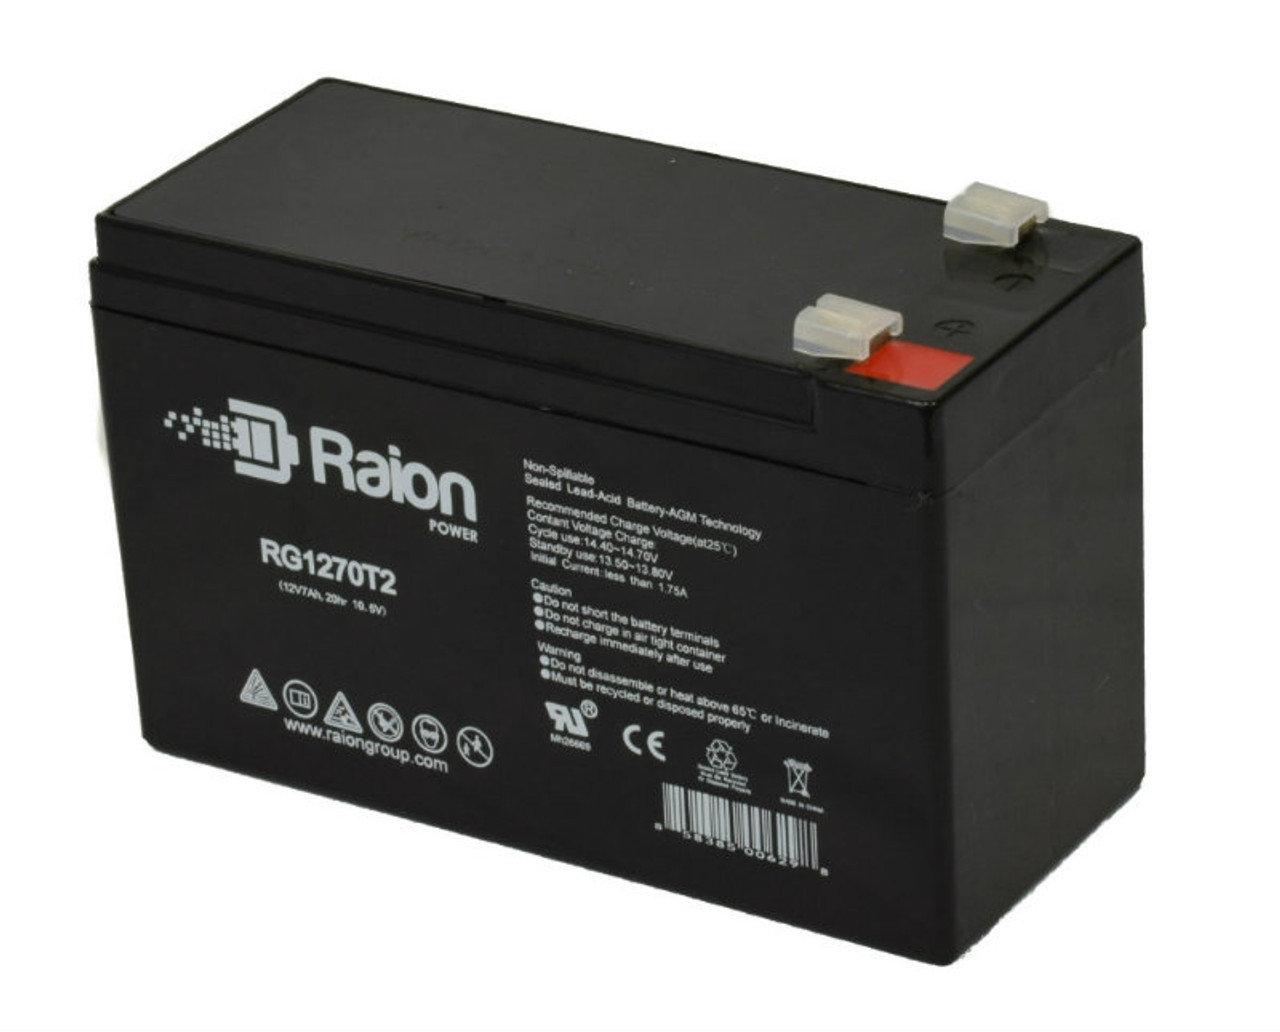 Raion Power RG1270T1 Replacement Battery for Consent Battery GS126